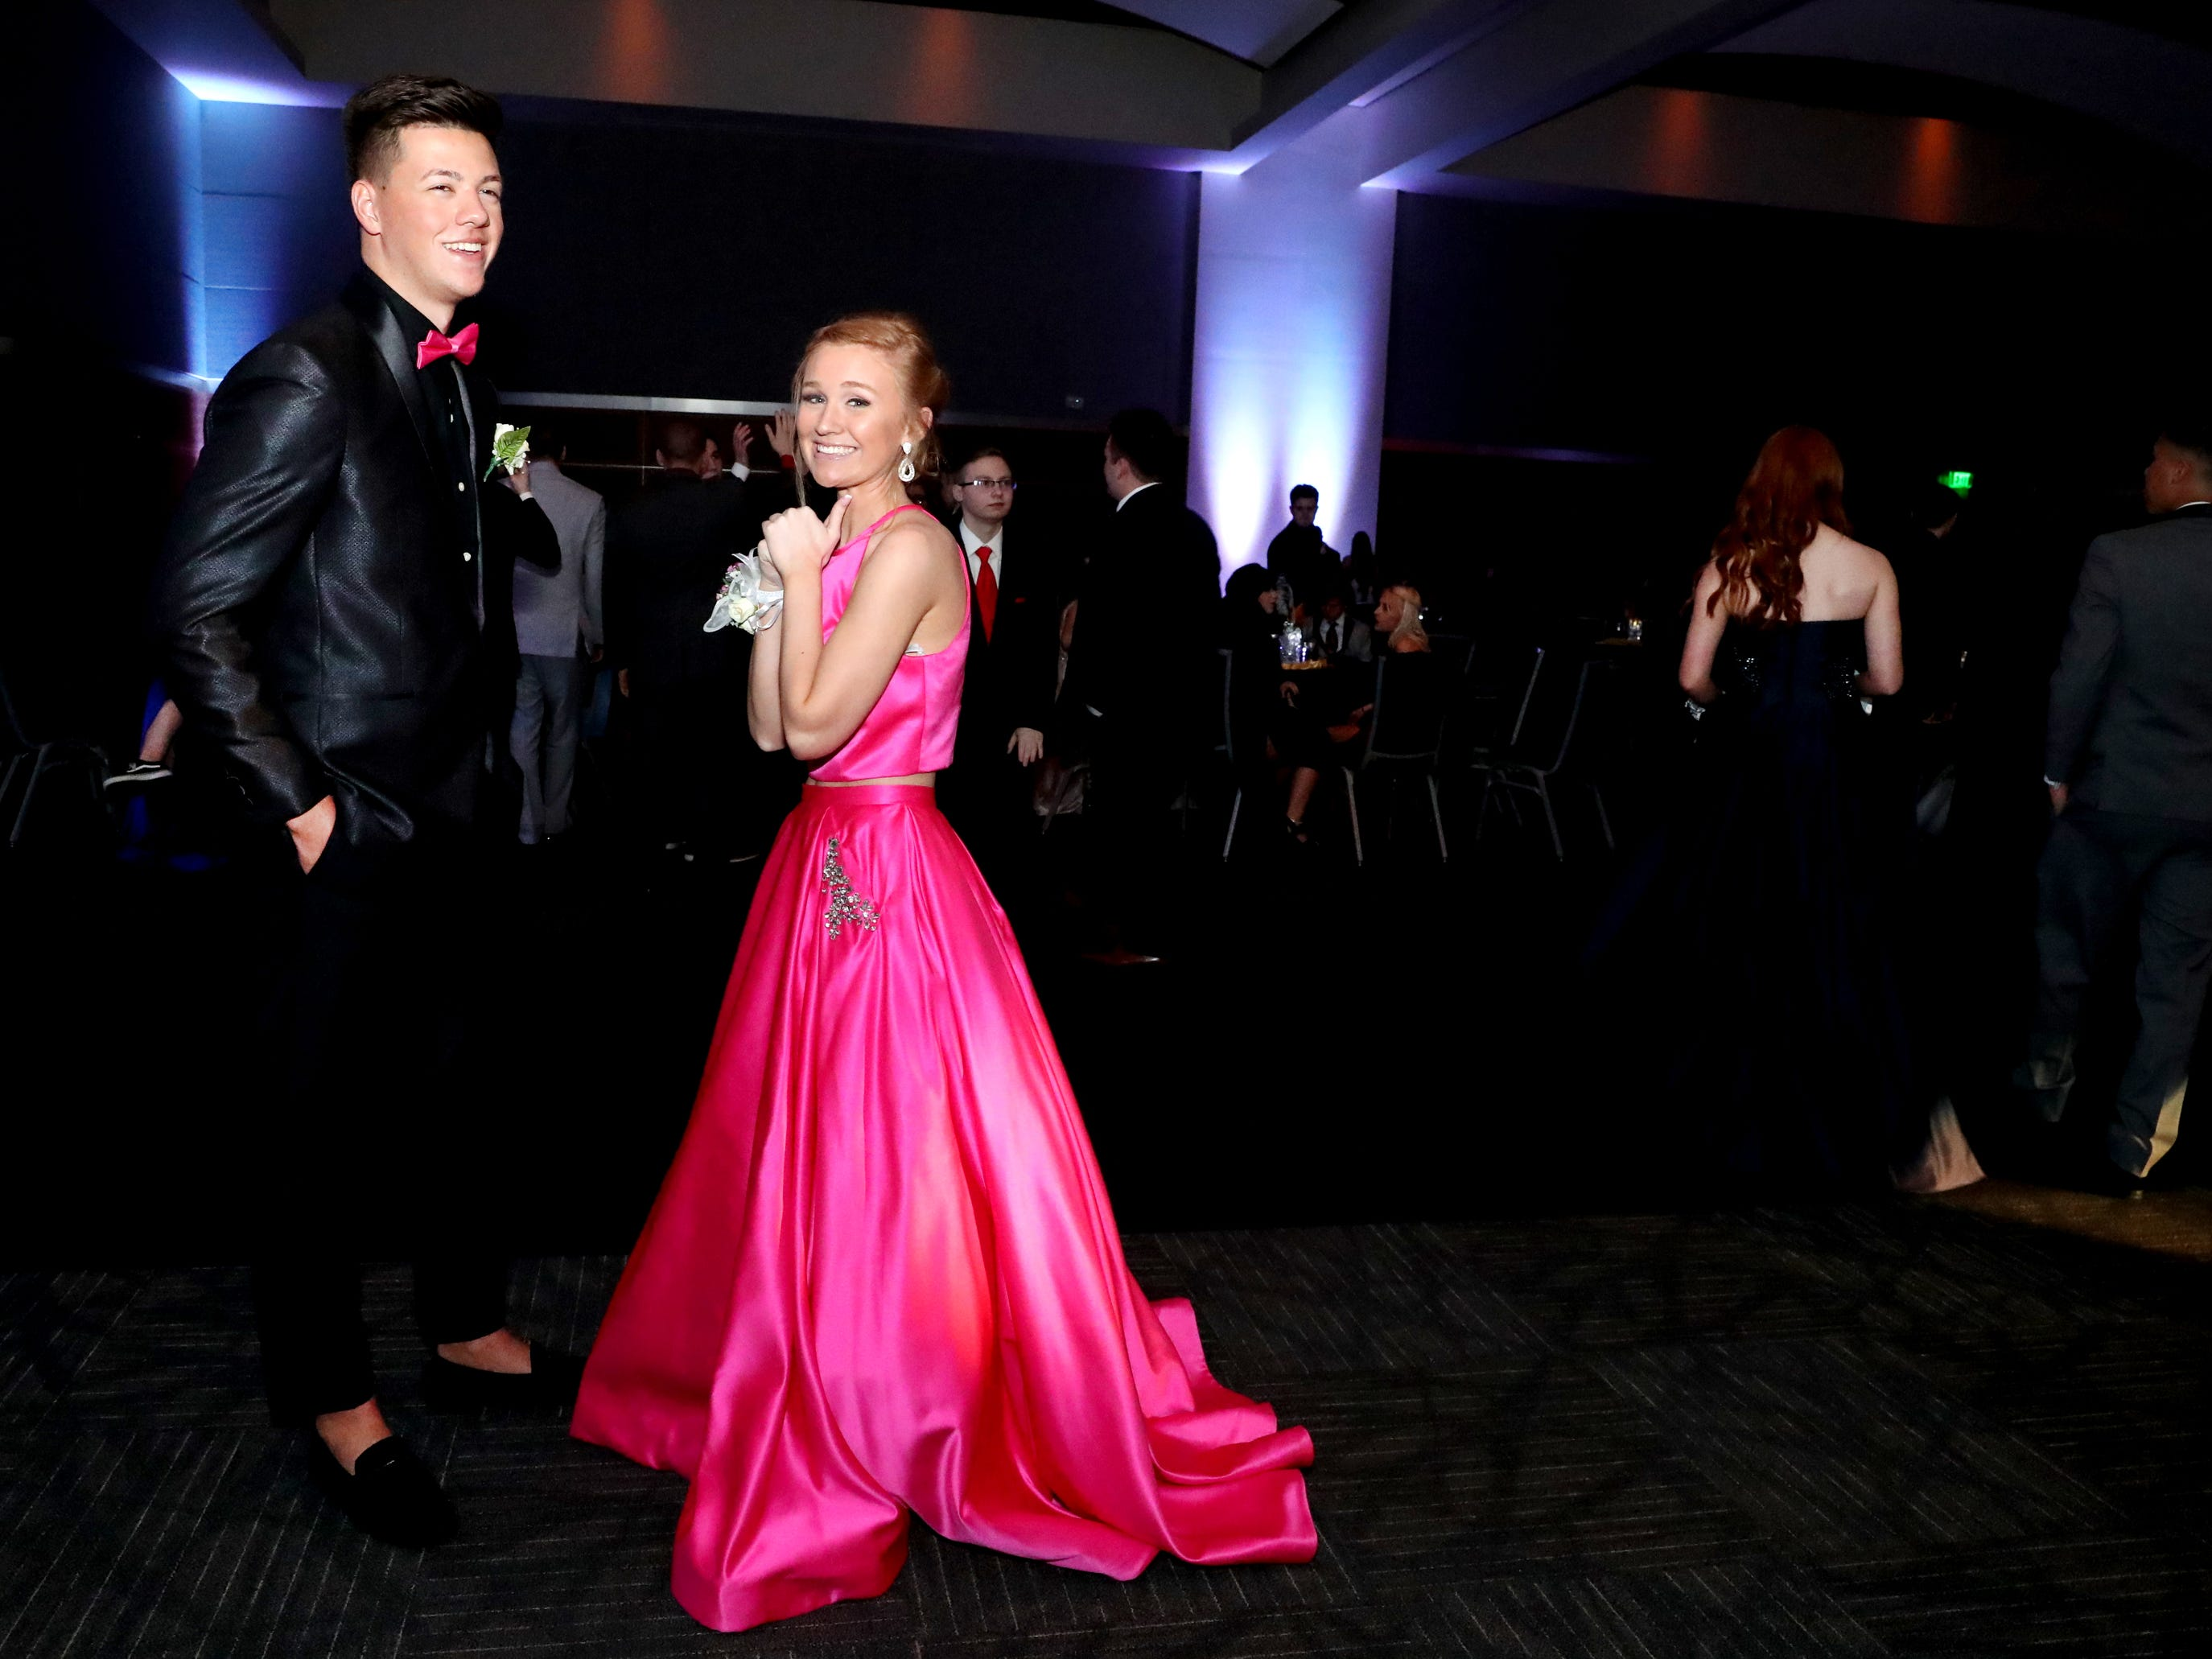 Luke Mooneyham, left and Brooke Stewart, right at Blackman's prom held on Friday April 12, 2019, at MTSU.